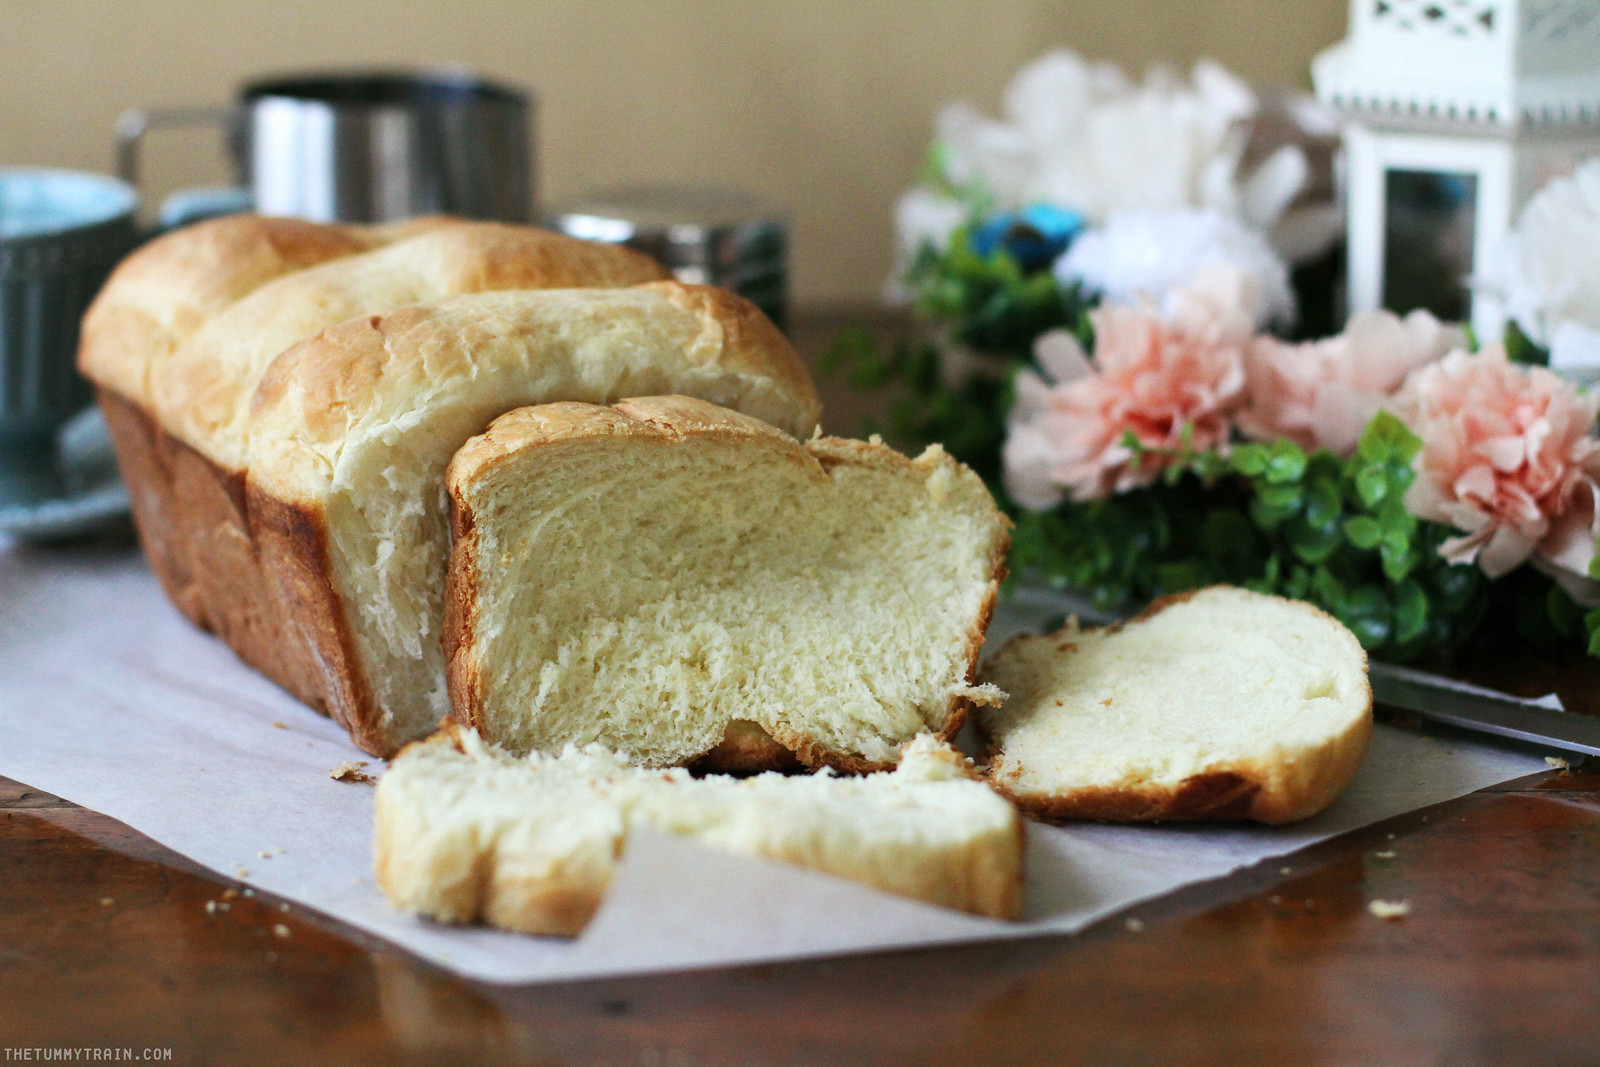 32999331191 22baa49740 h - An unforgettable Hokkaido Milk Bread, and why everyone should be making it